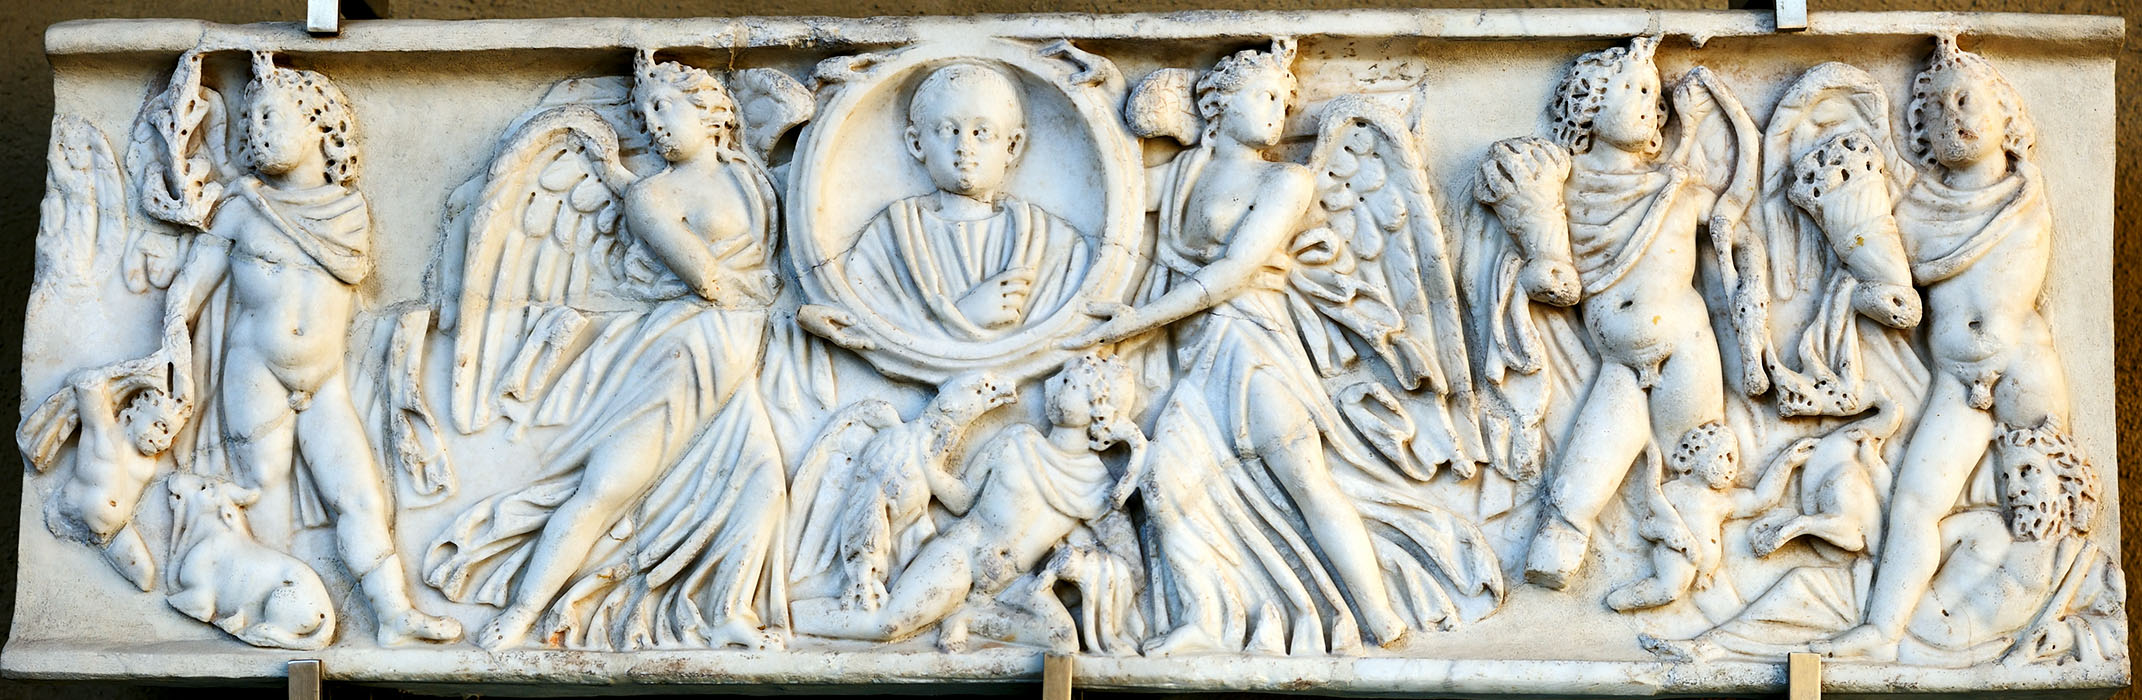 Front wall of sarcophagus with clipeus portrait (imago clipeata) of the deceased boy. Luni (Carrara) marble. 3rd century CE. Rome, National Museum of Palazzo Venezia